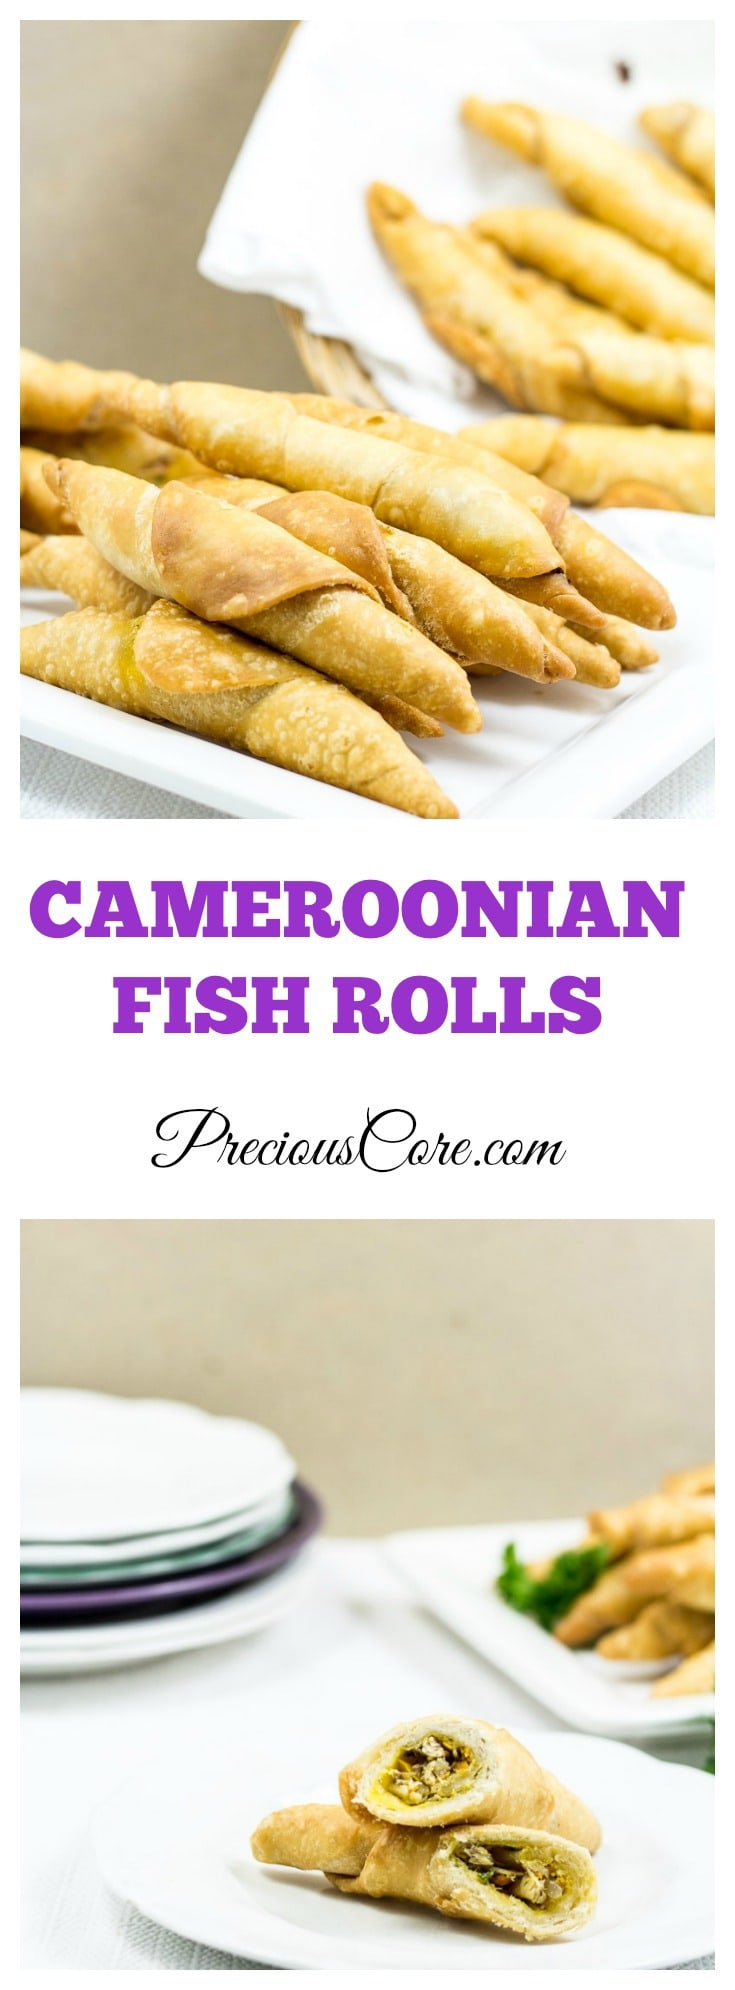 best Cameroonian fish rolls recipe and video